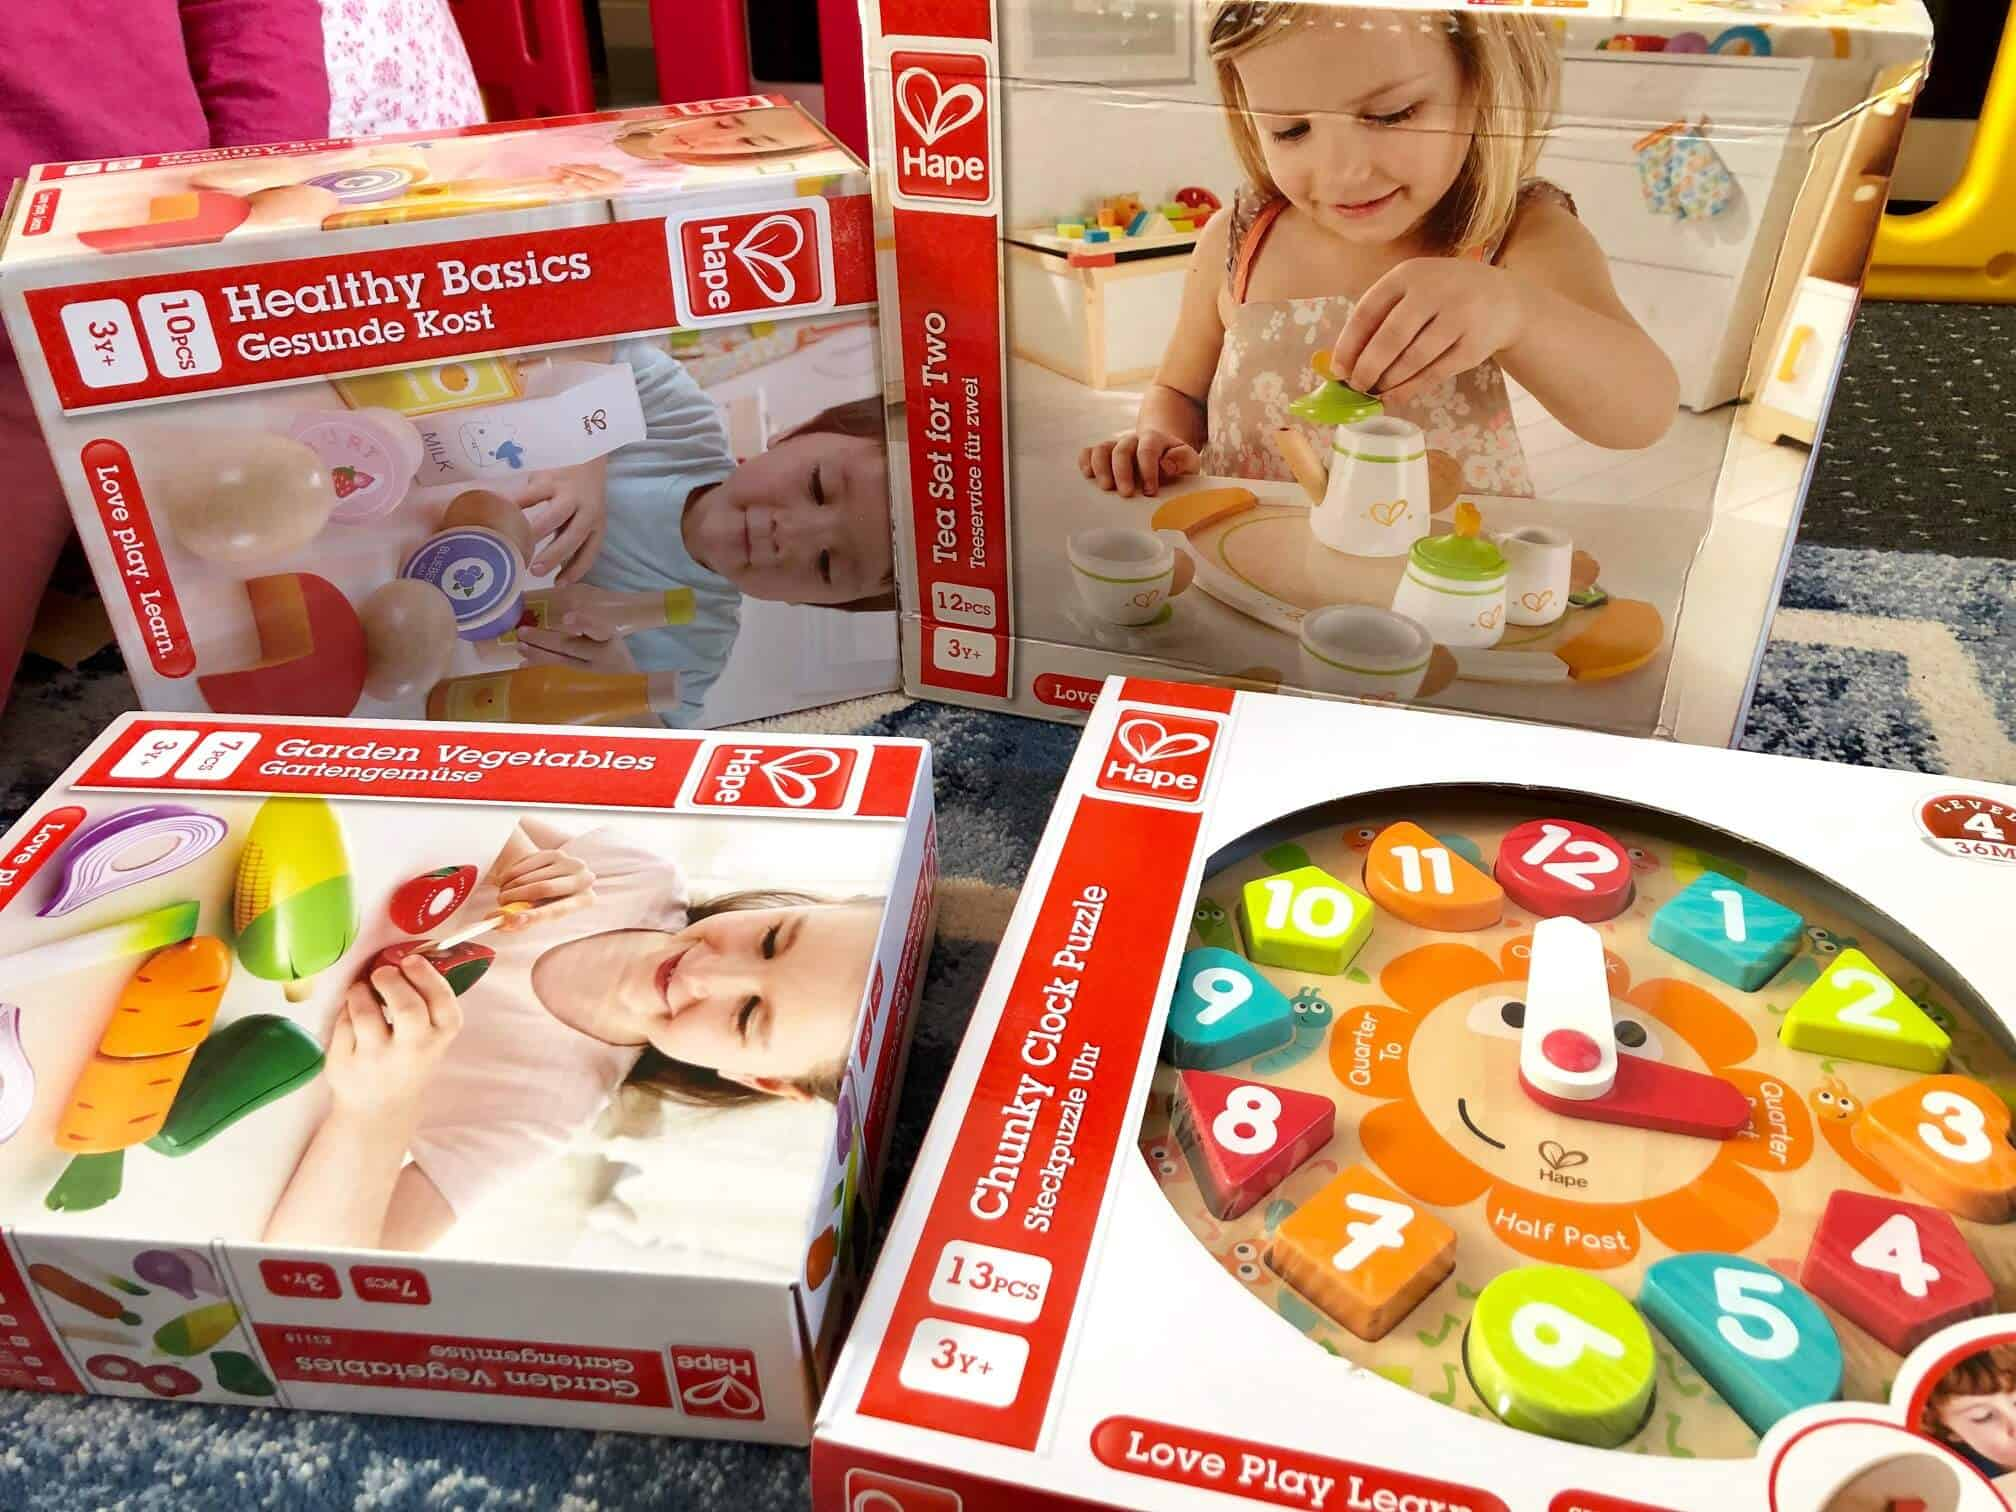 Cook up a Storm with Hape's Kitchen and Food Range - wooden toy range